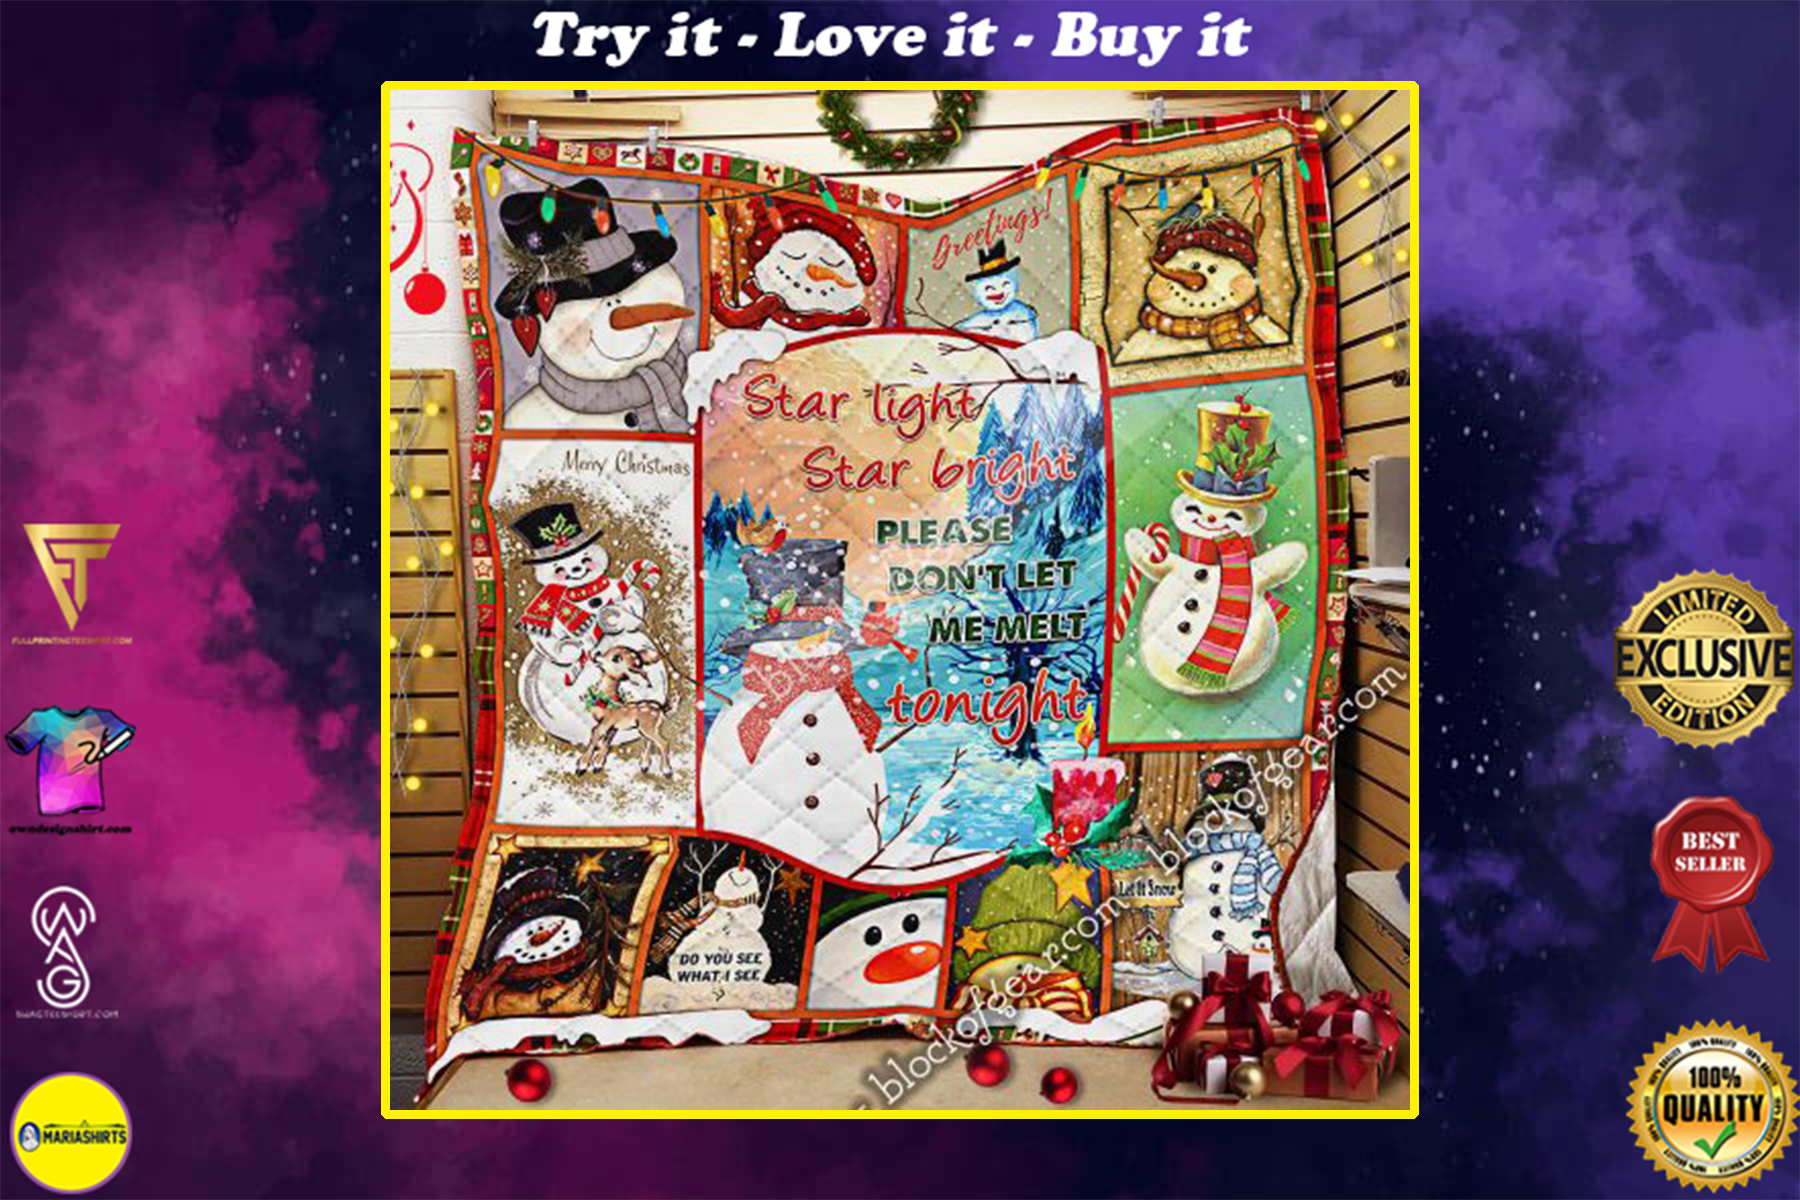 [special edition] christmas snowflakes star light star bright please dont let me melt tonight quilt - maria